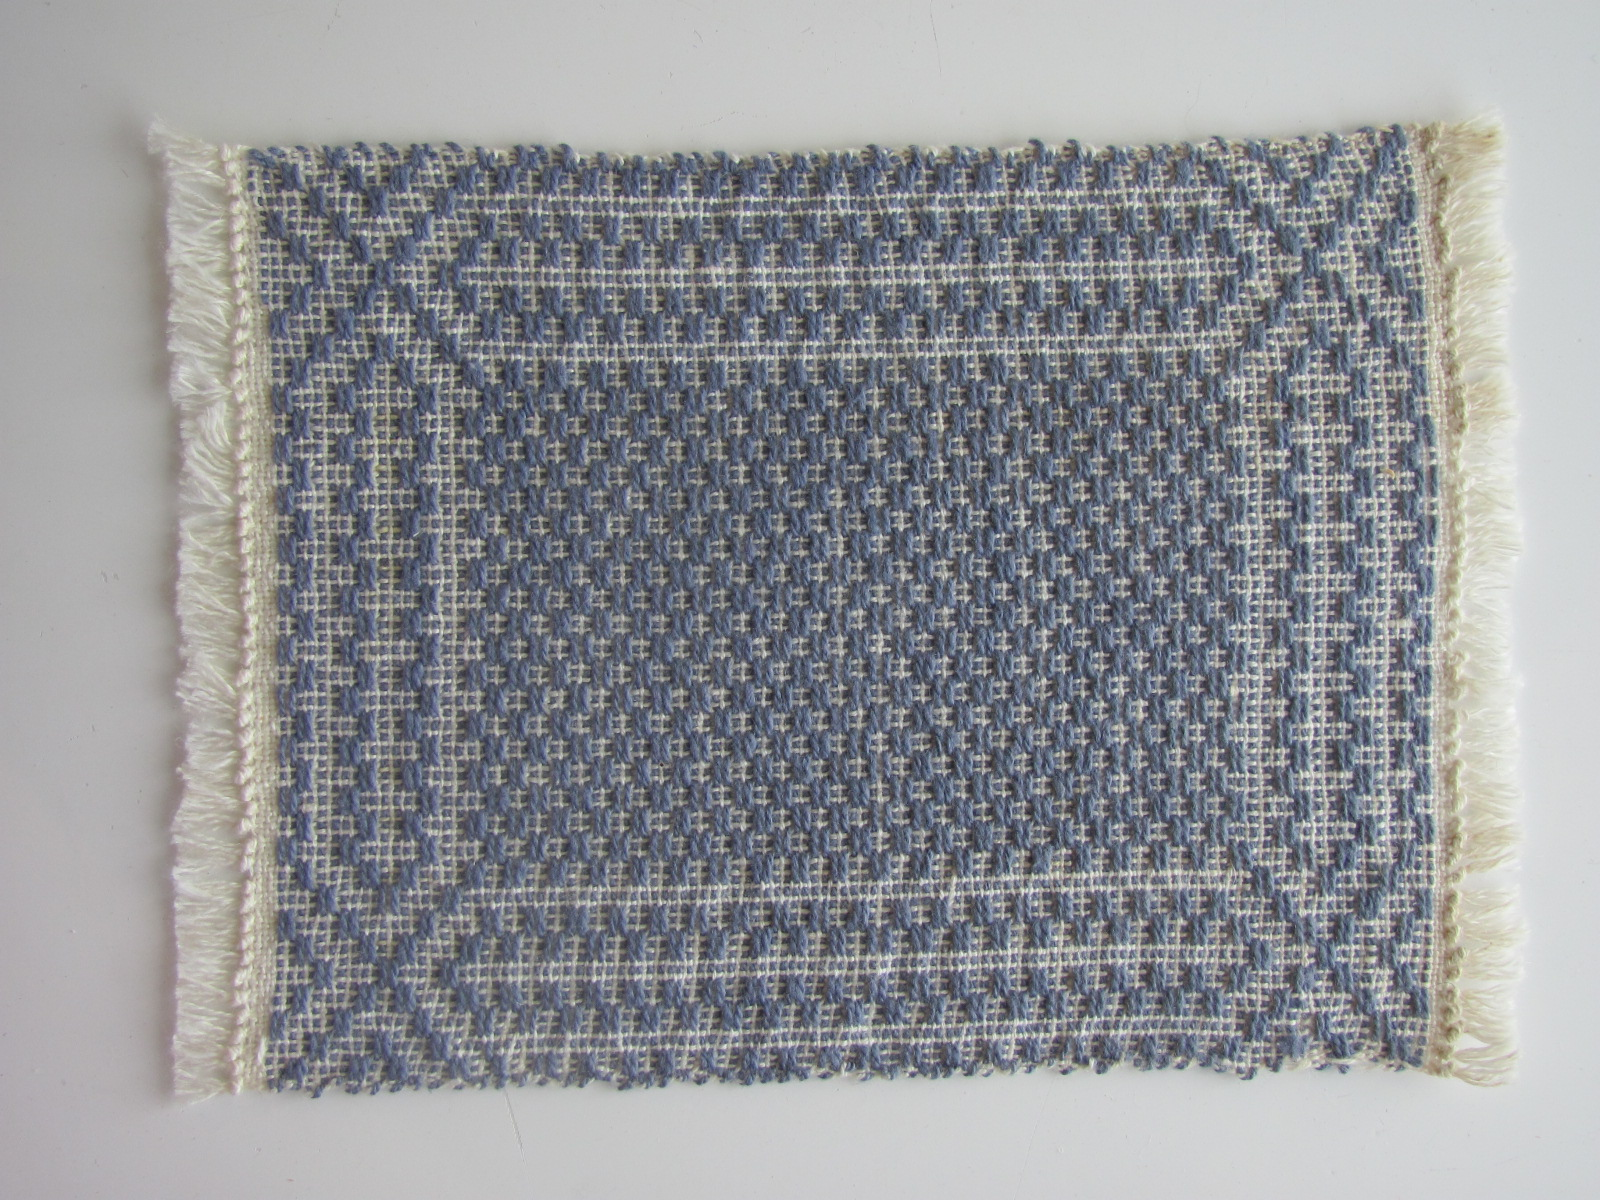 Colonial blue miniature dollhouse handwoven floor rug 1 12 for Decor international handwoven rugs